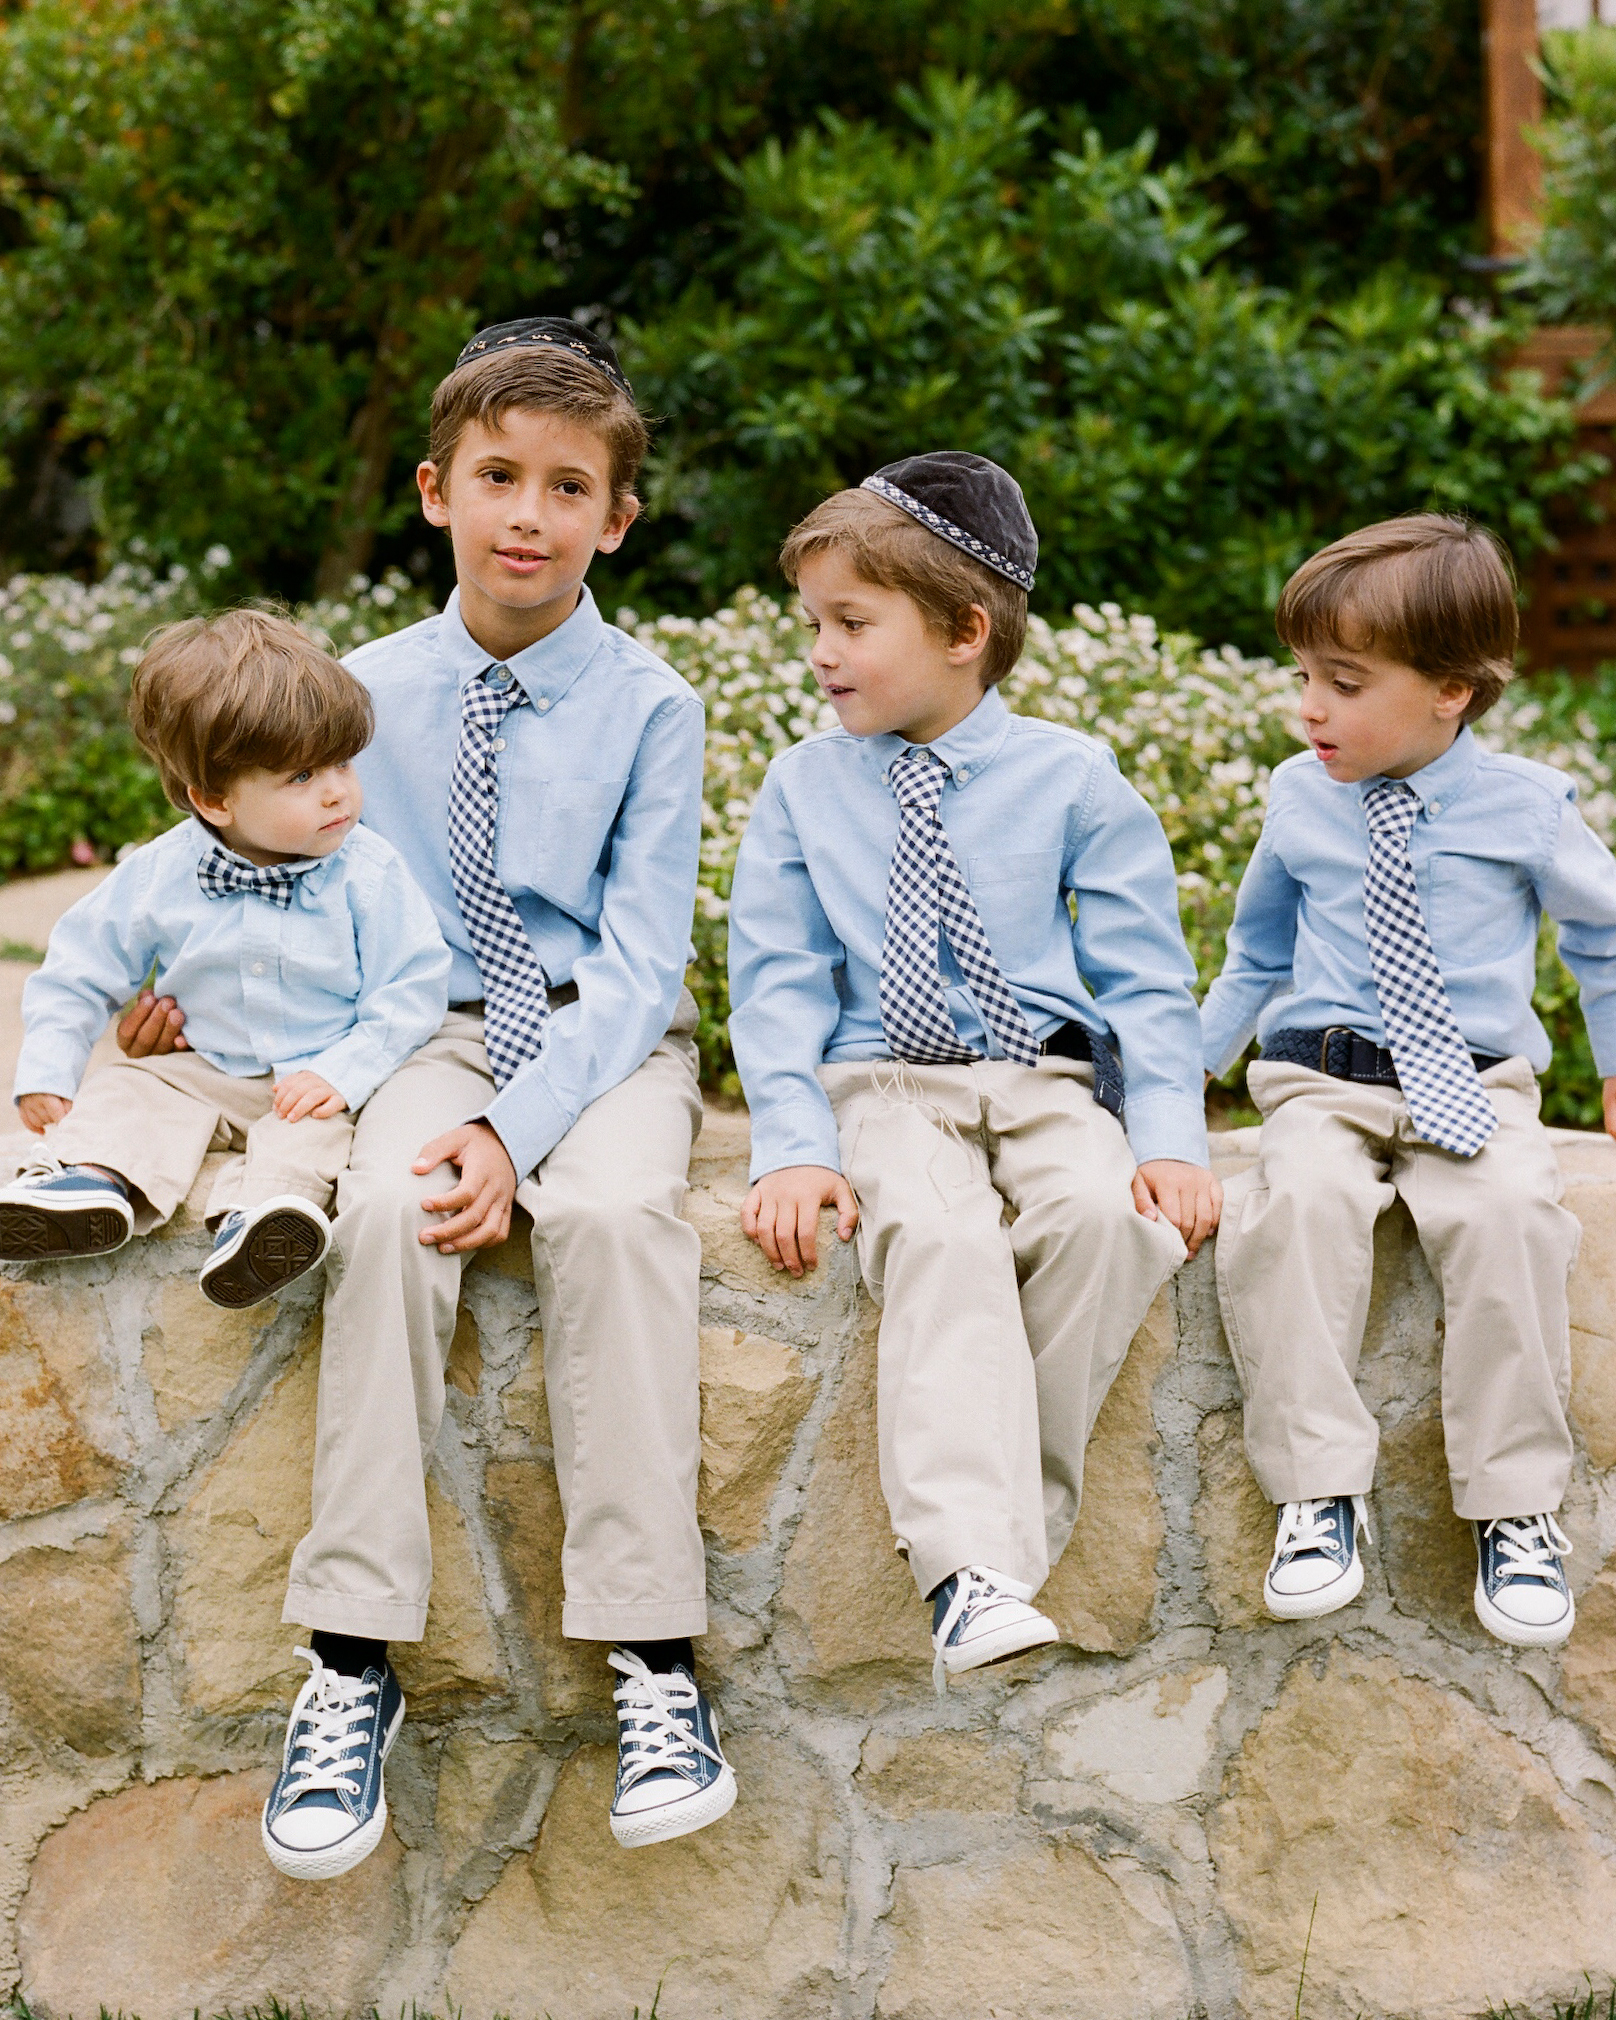 The Ring Bearers and 'Best Baby'